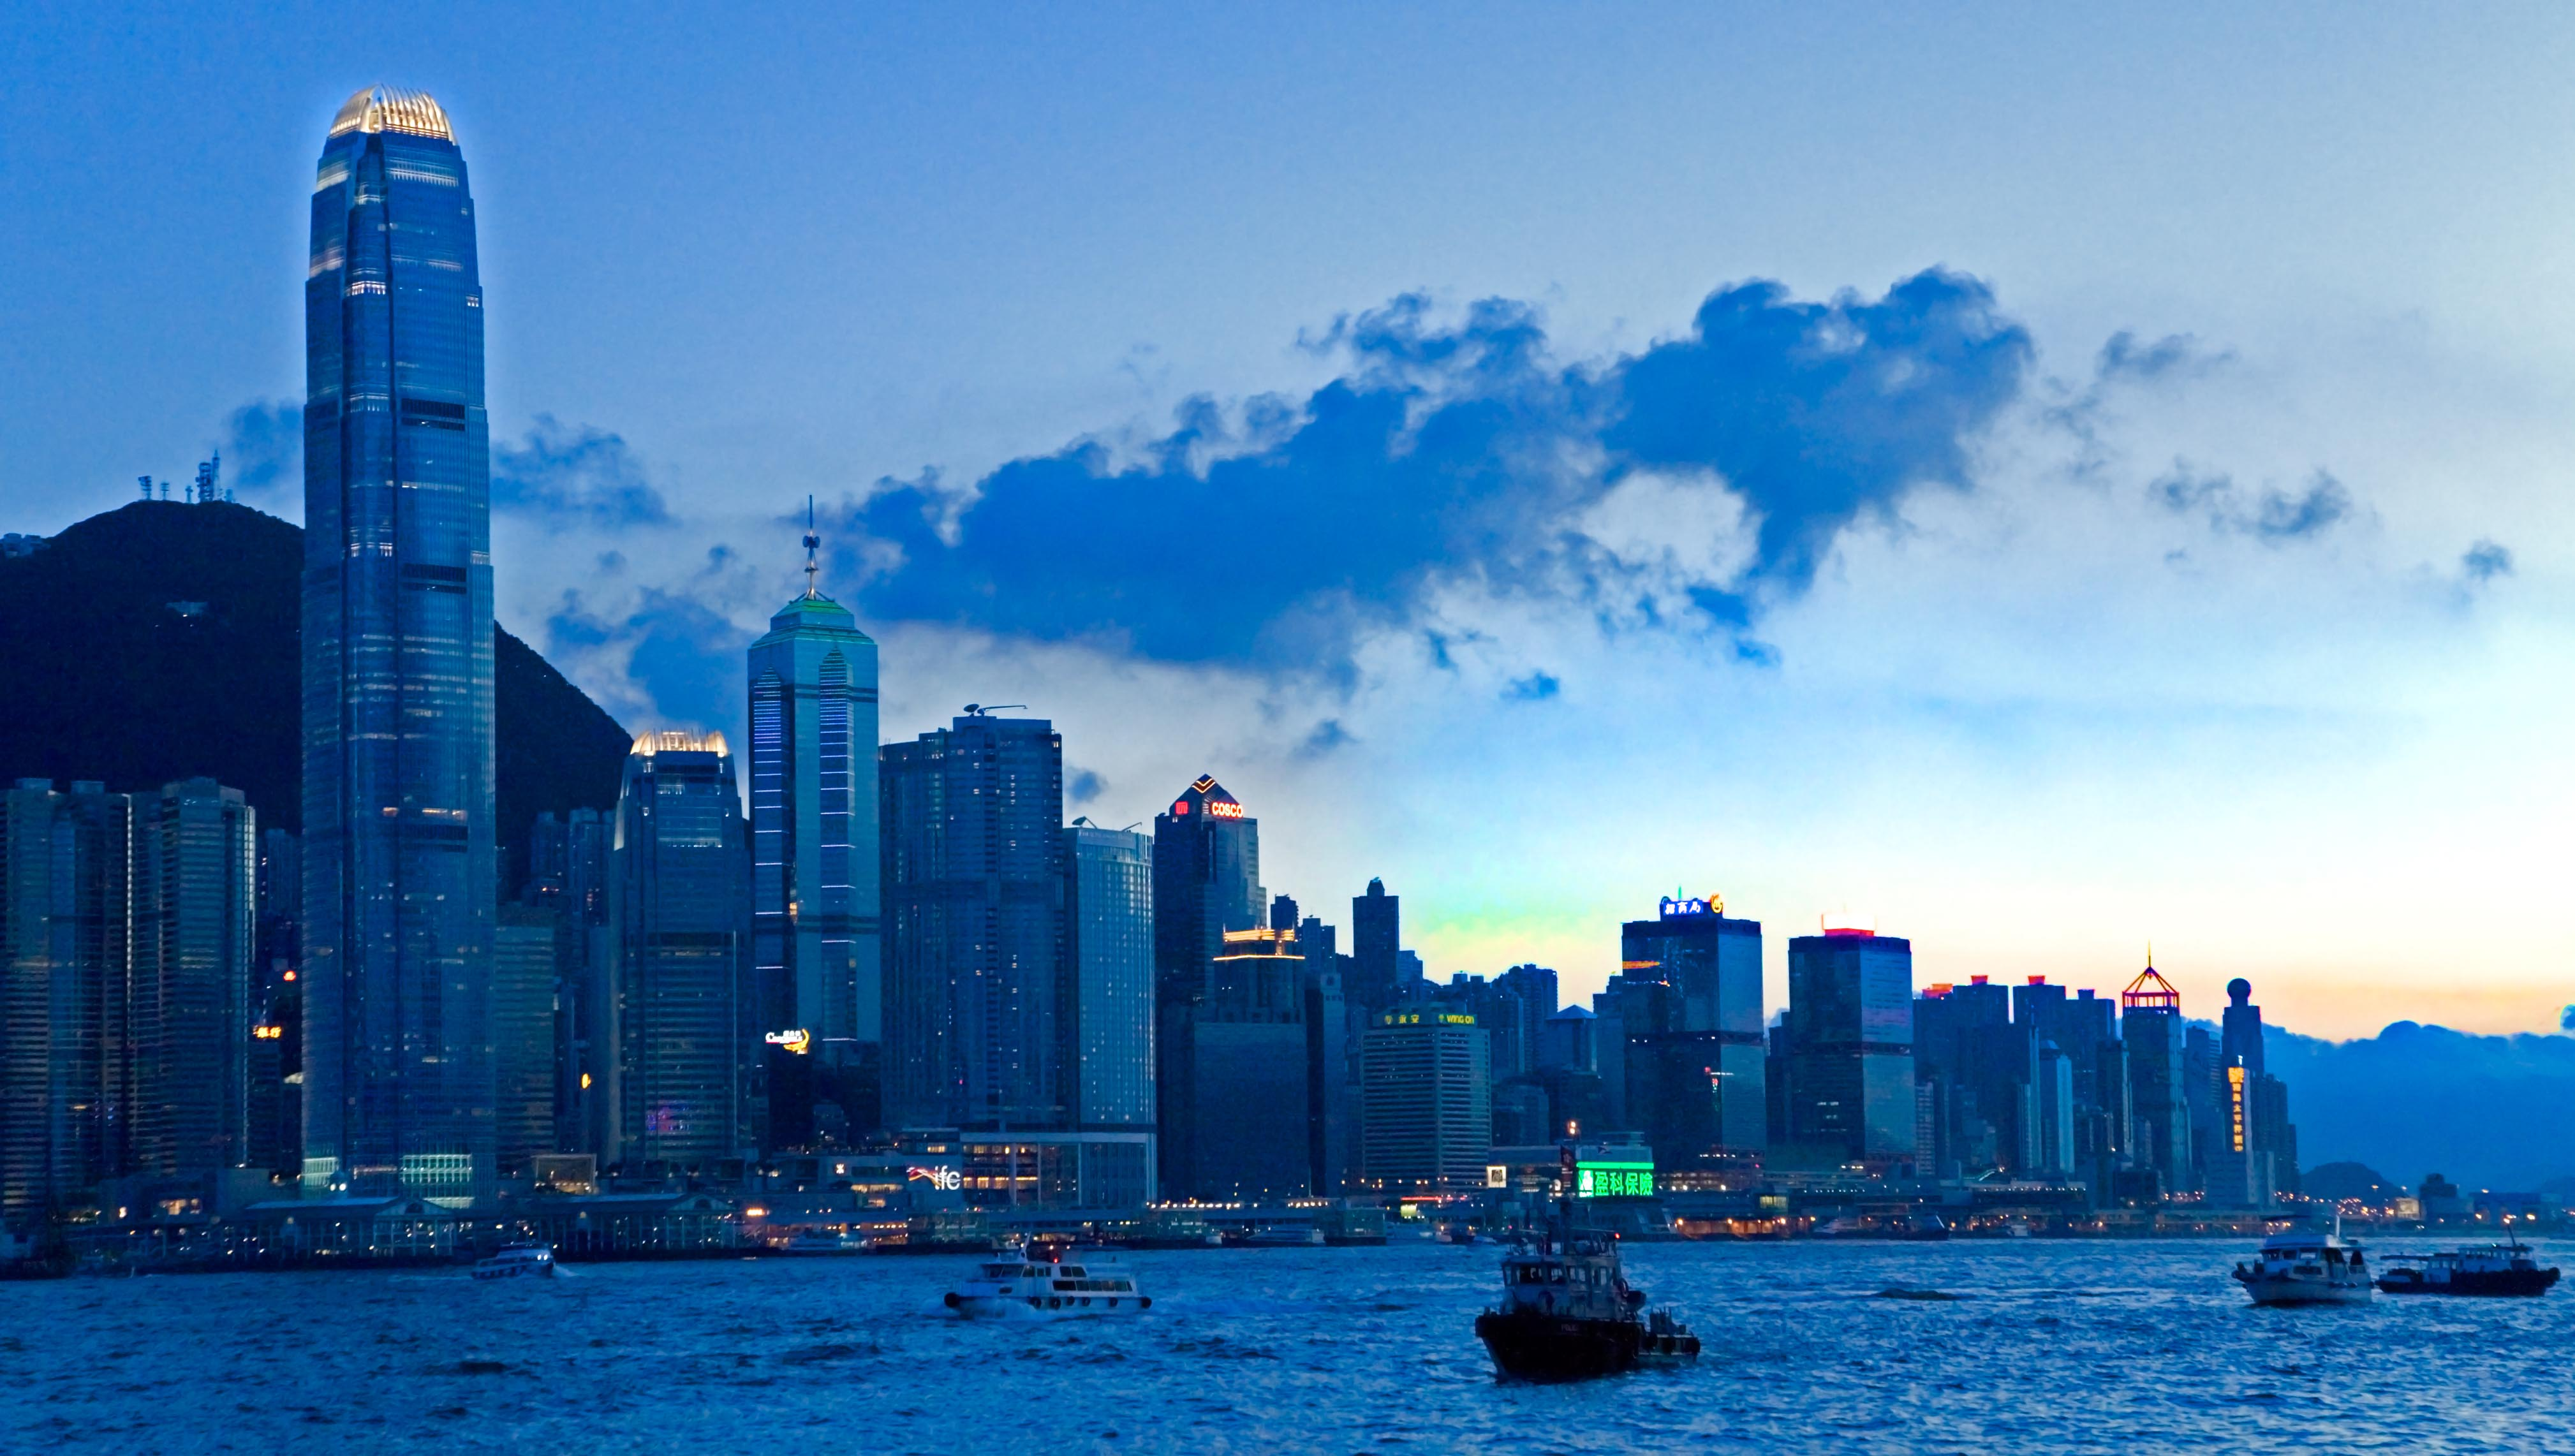 Hong_Kong_at_Dusk_(SKY-SUNSET)_I_(1138222273).jpg